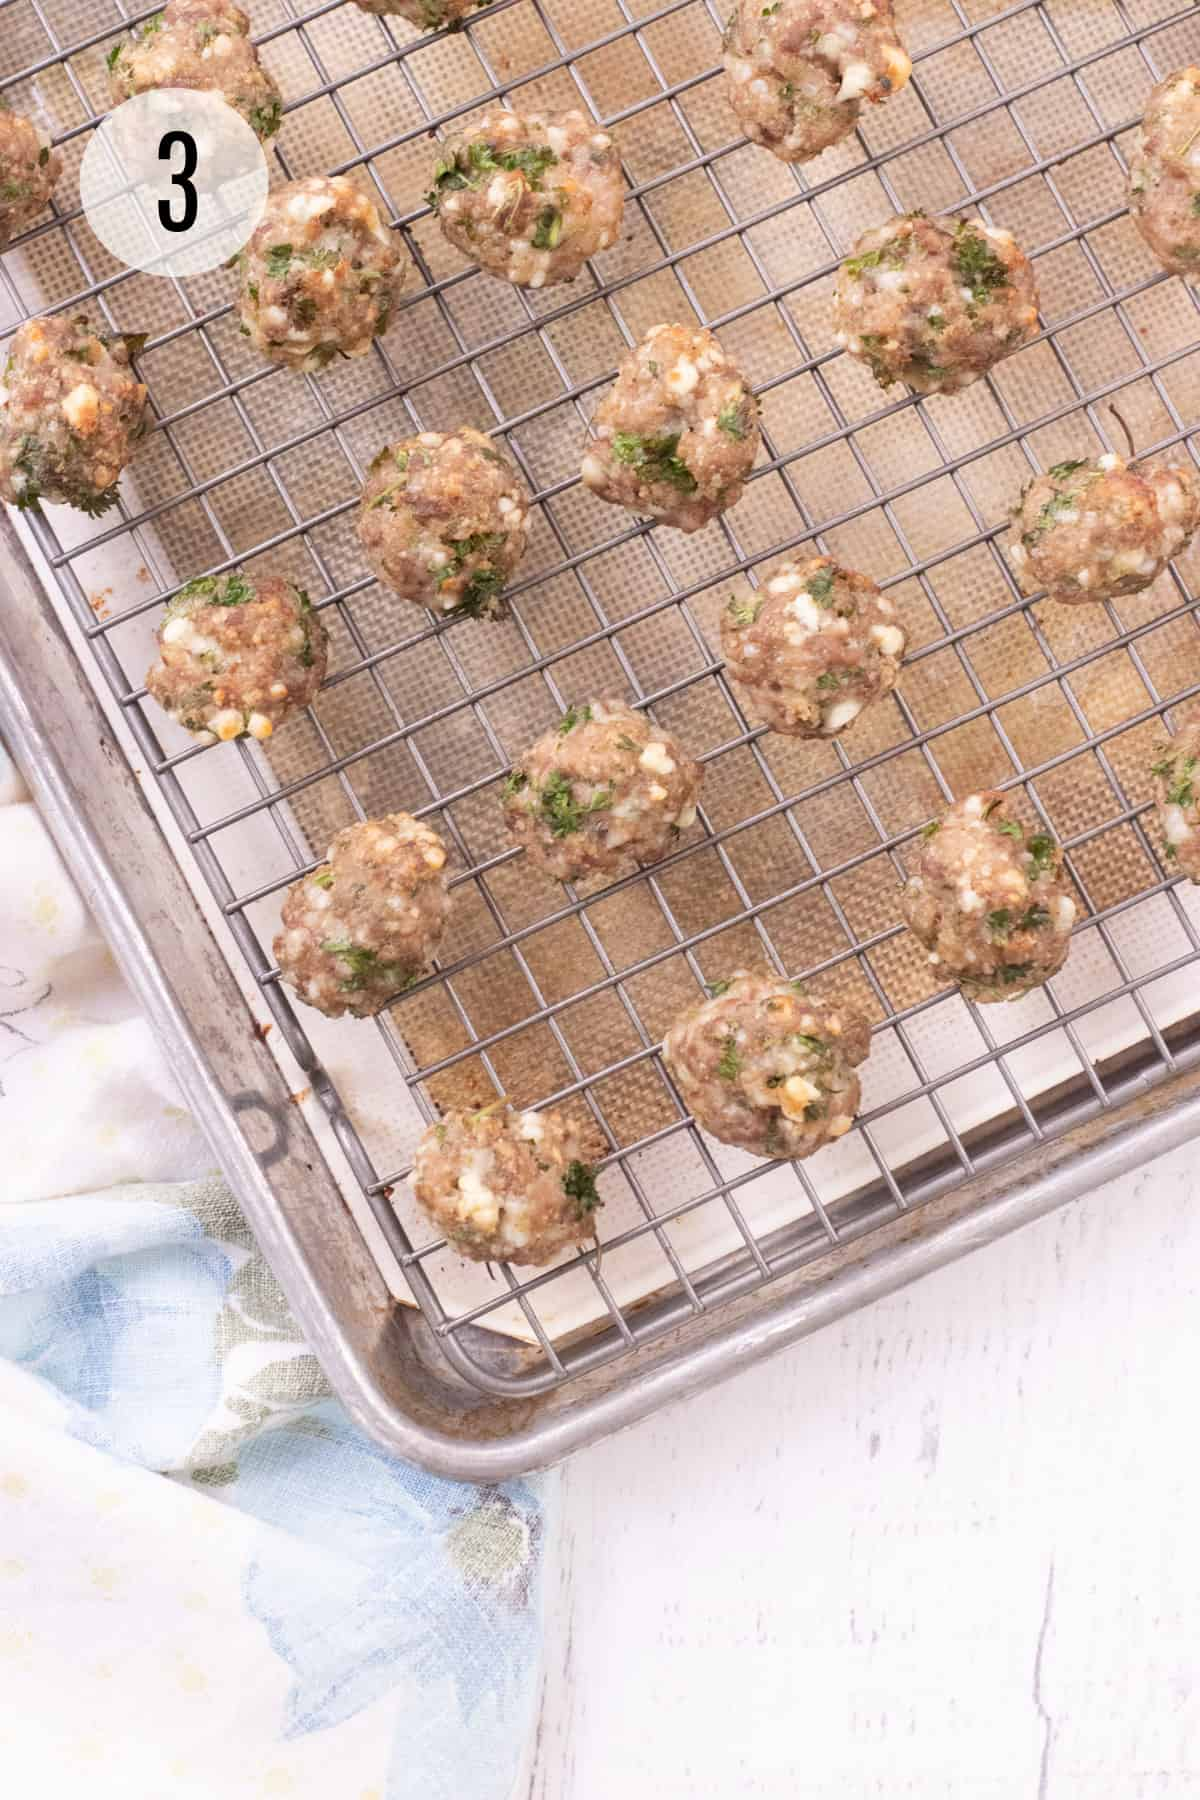 Metal baking rack with tan silicone baking mat on a baking sheet and cooked meatballs with parsley and cheese on baking rack.